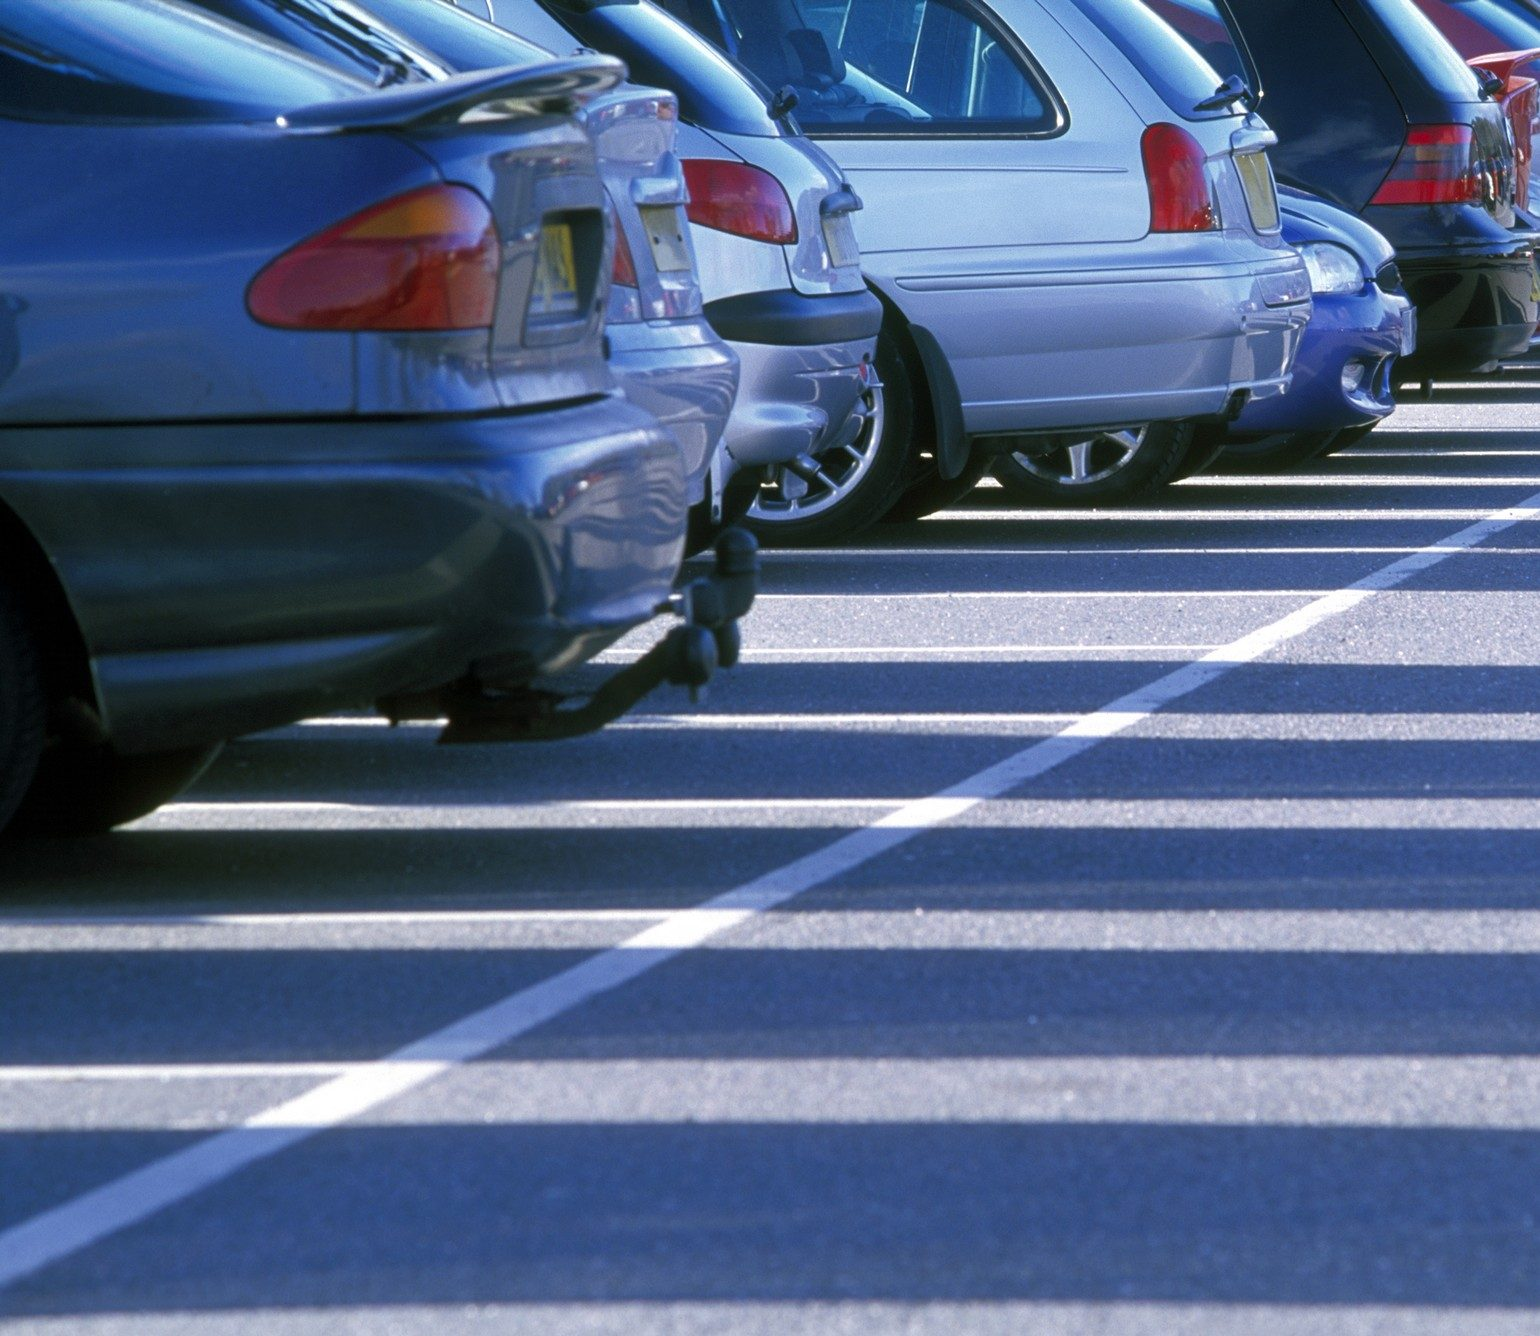 Row of cars in retail car park